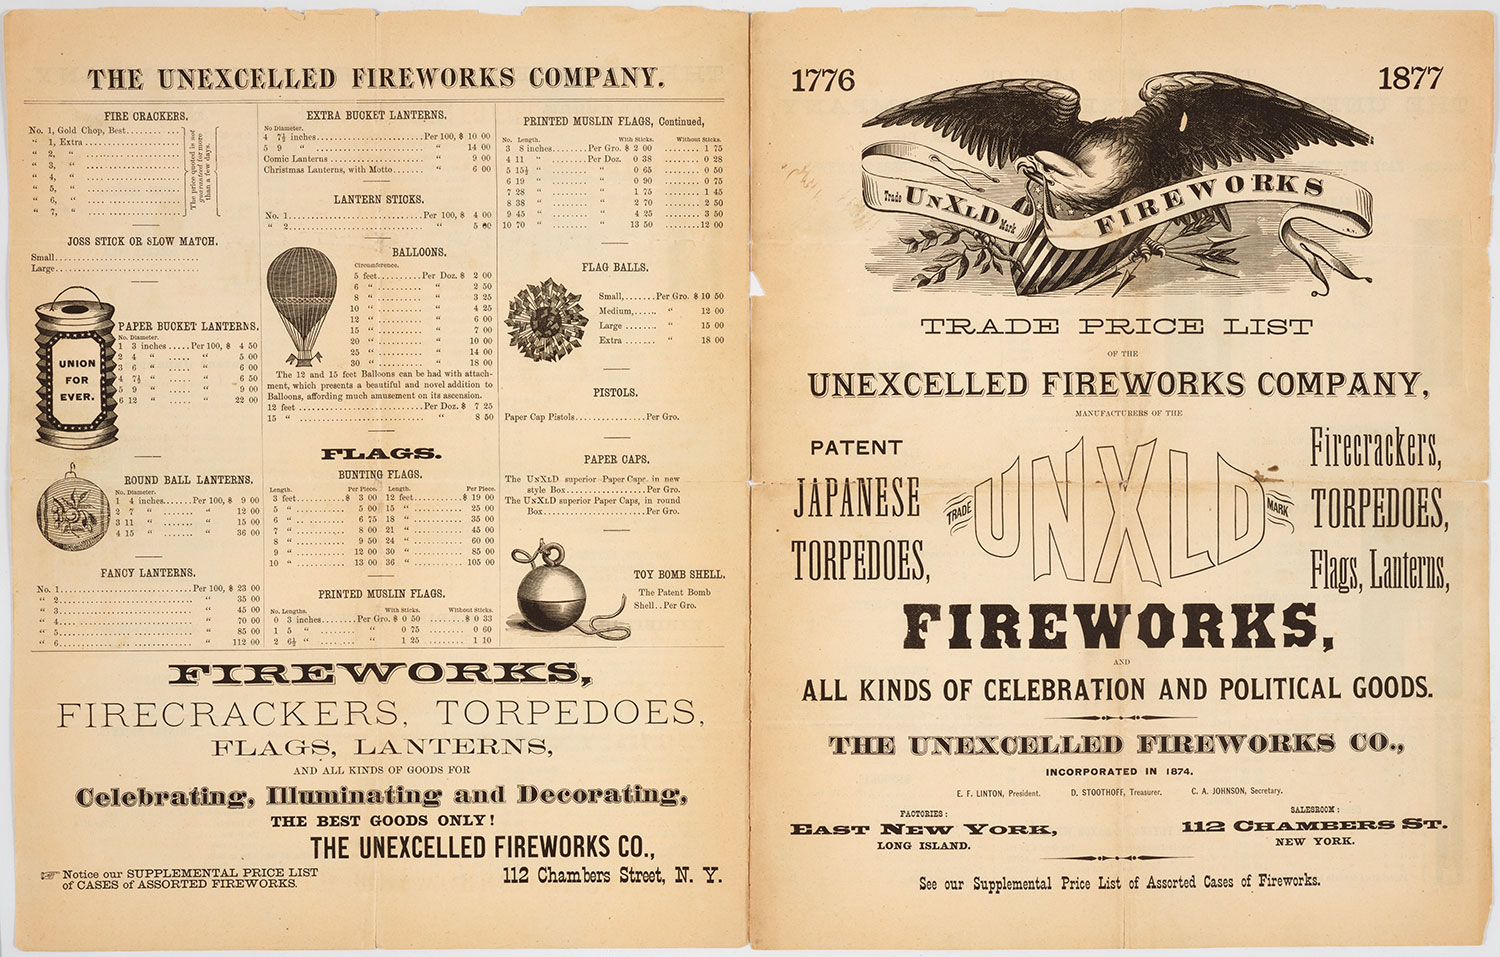 Price list for fireworks in 1877